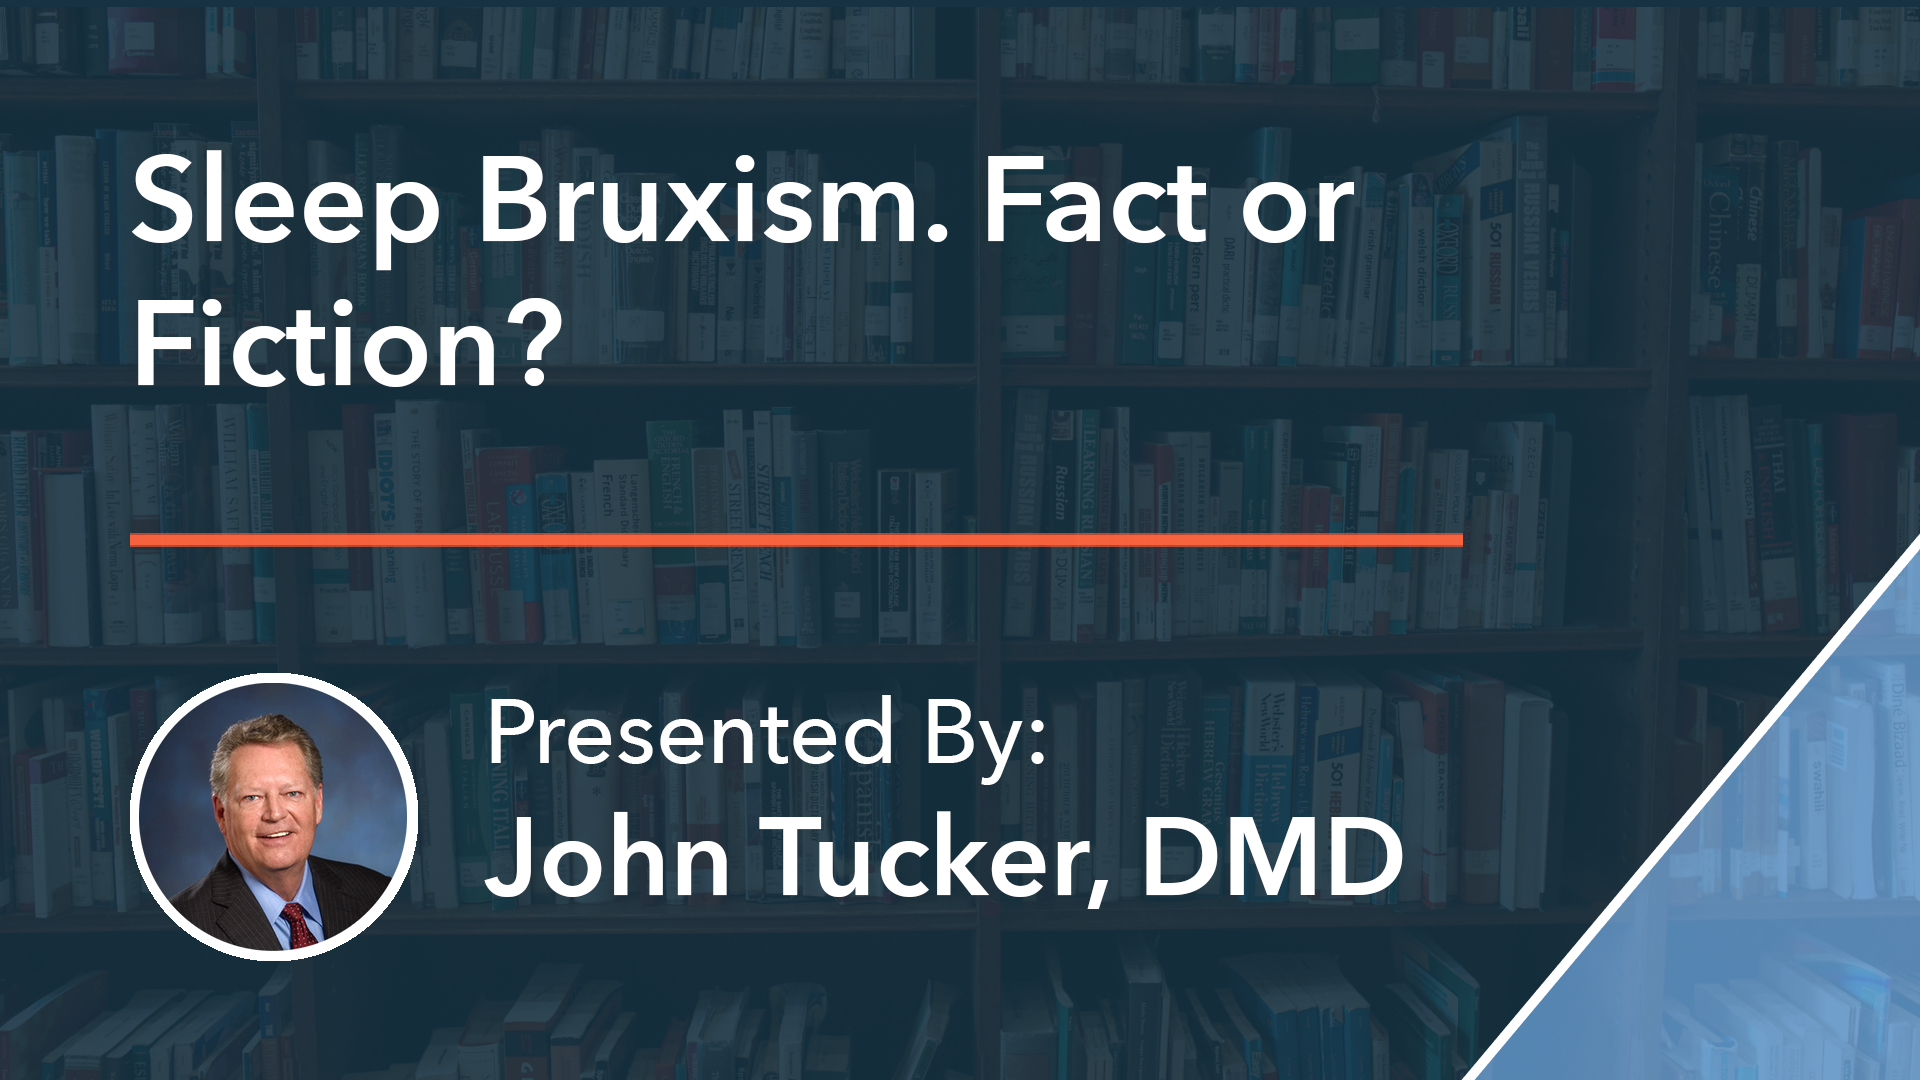 Sleep Bruxism. Fact or Fiction Dr John Tucker